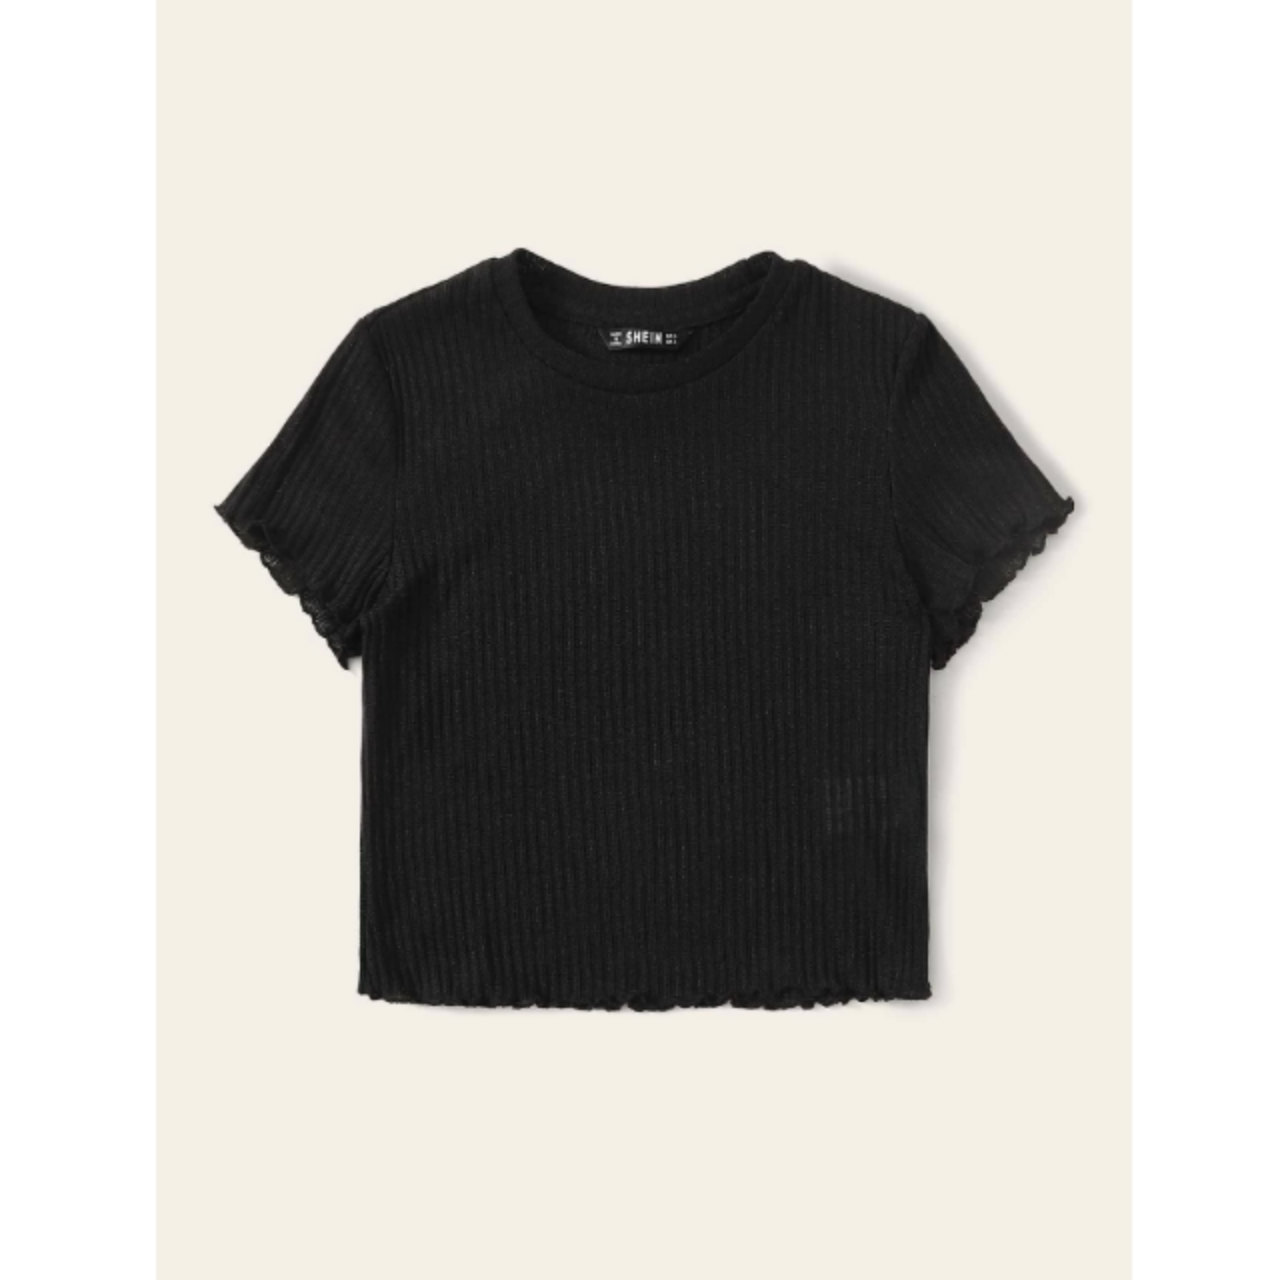 Ribbed lettuce-edge cropped tee s